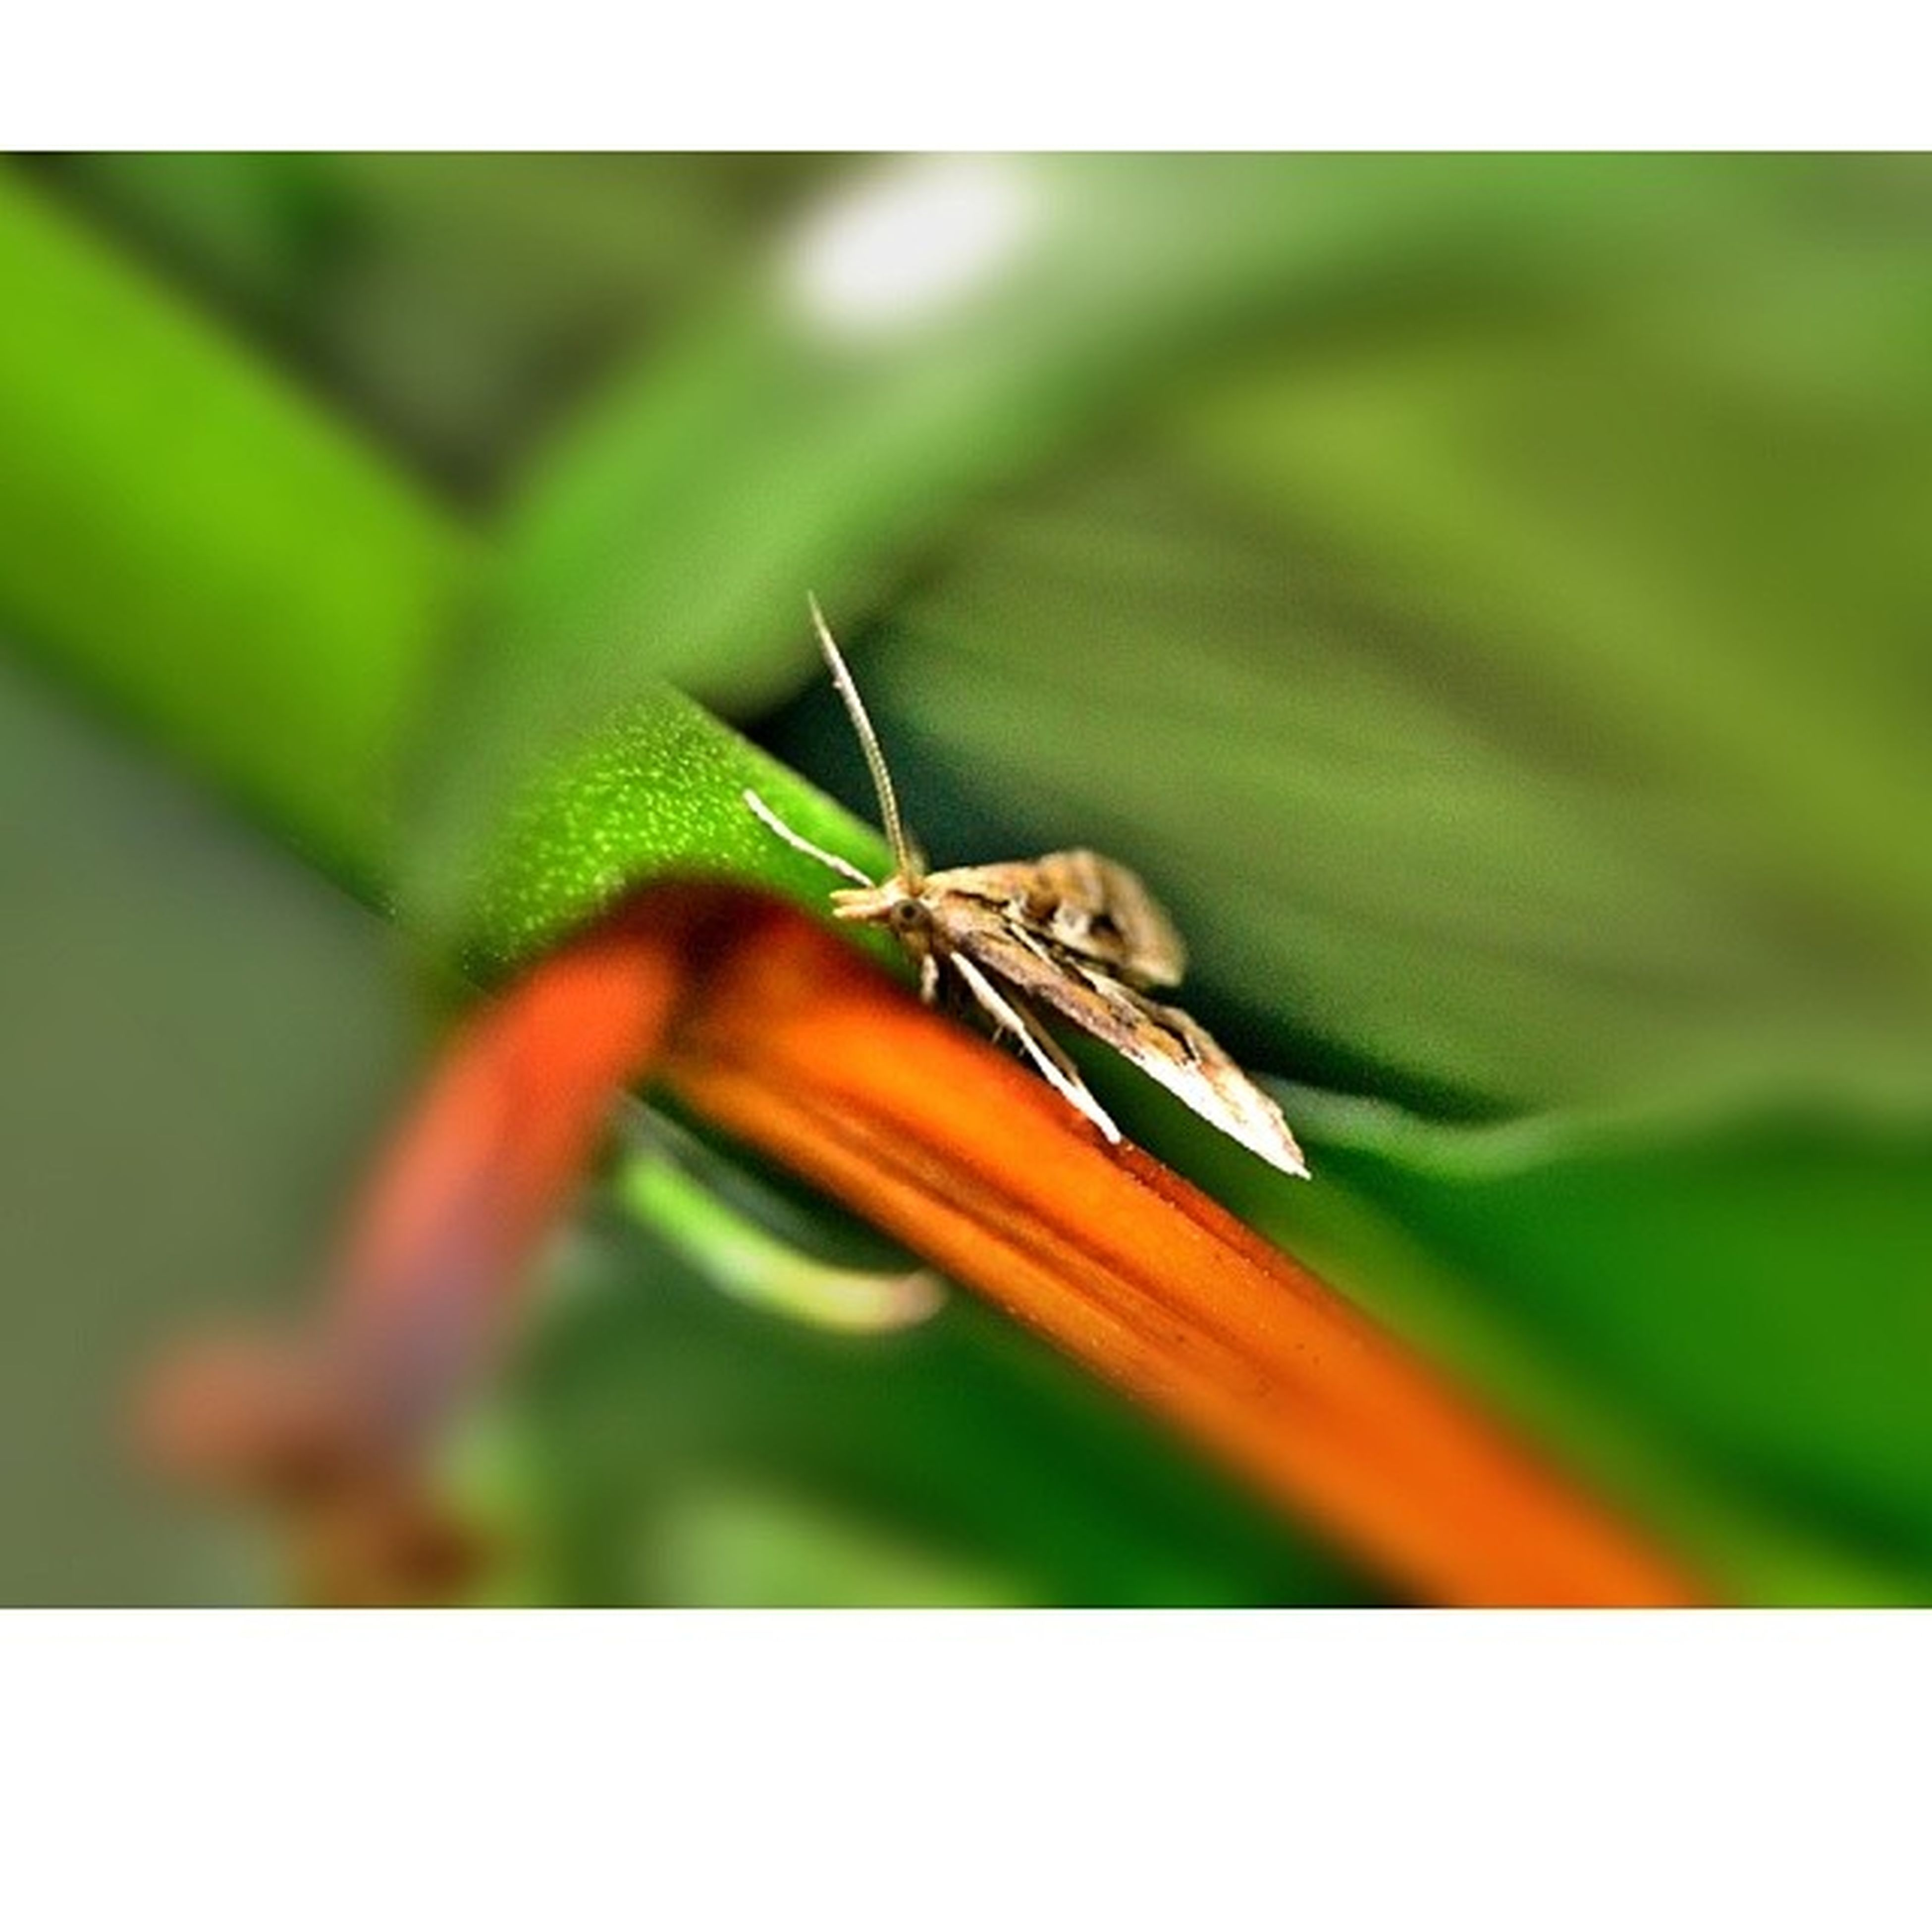 one animal, animal themes, animals in the wild, wildlife, insect, leaf, green color, close-up, focus on foreground, full length, nature, butterfly, perching, selective focus, zoology, transfer print, animal antenna, plant, auto post production filter, day